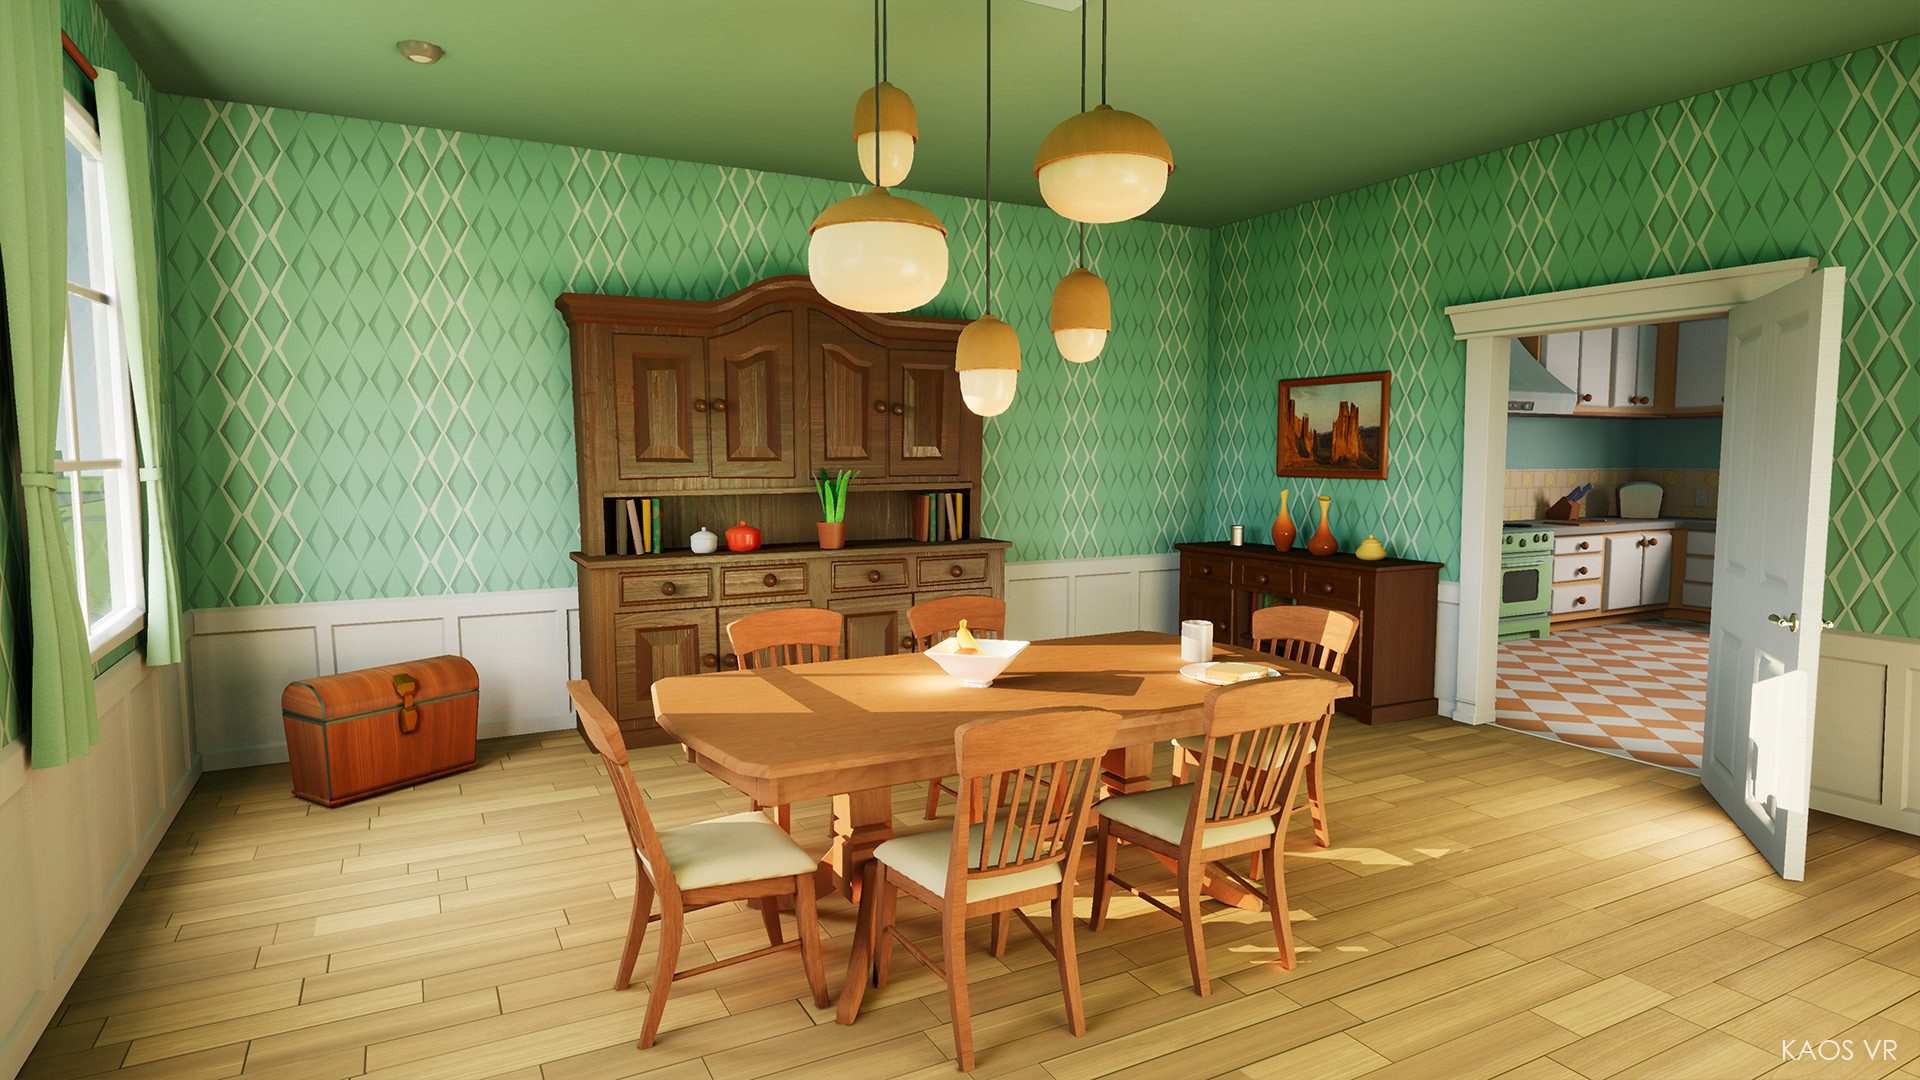 4 Ways to Accessorize a Dining Room - wikiHow